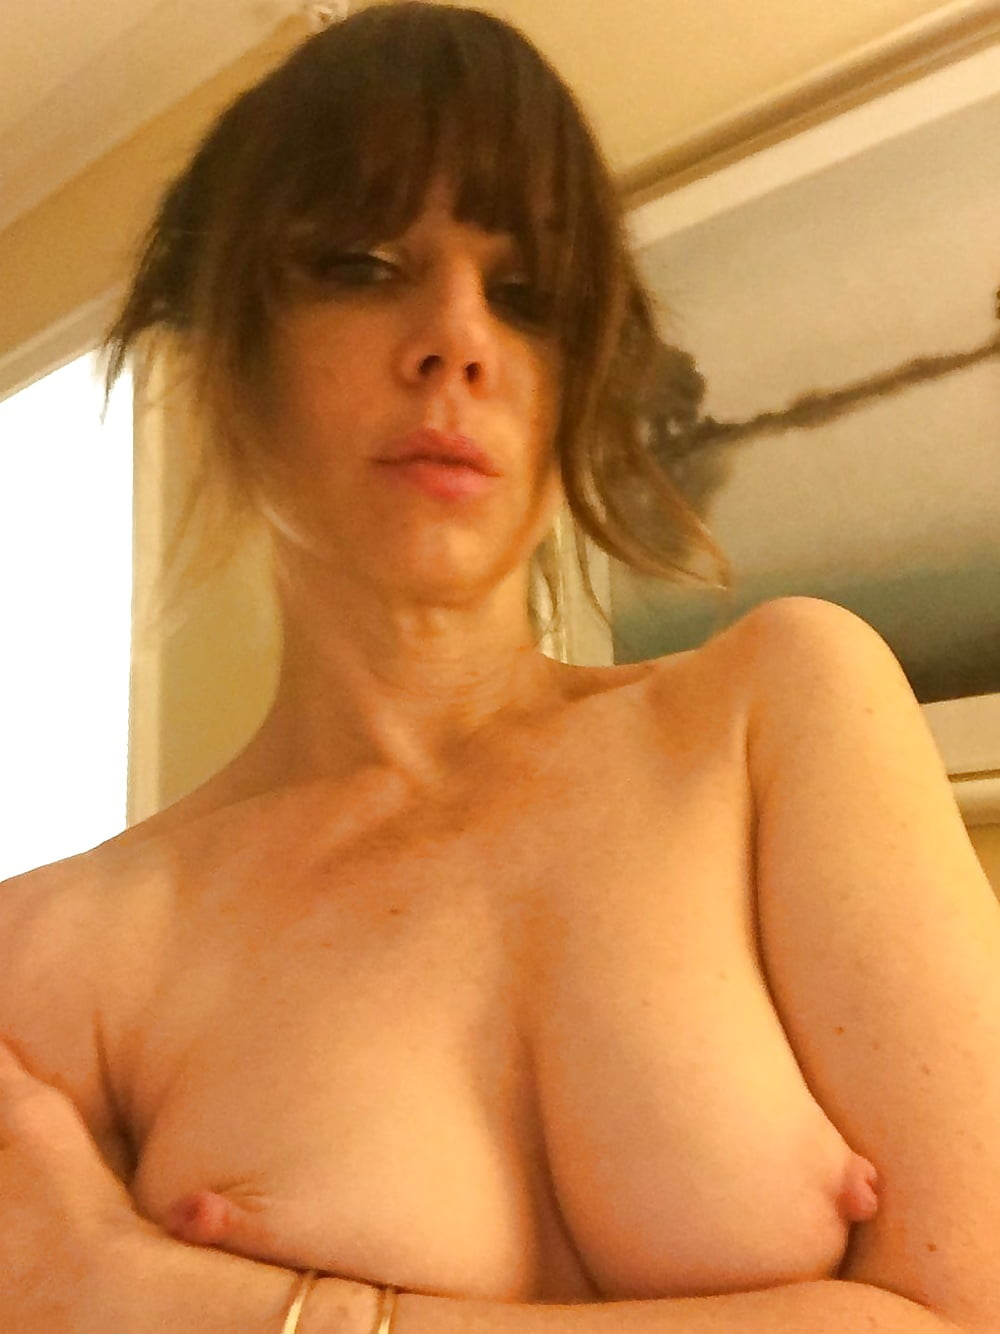 natasha-leggero-nude-naked-japan-inflation-bonds-blackrock